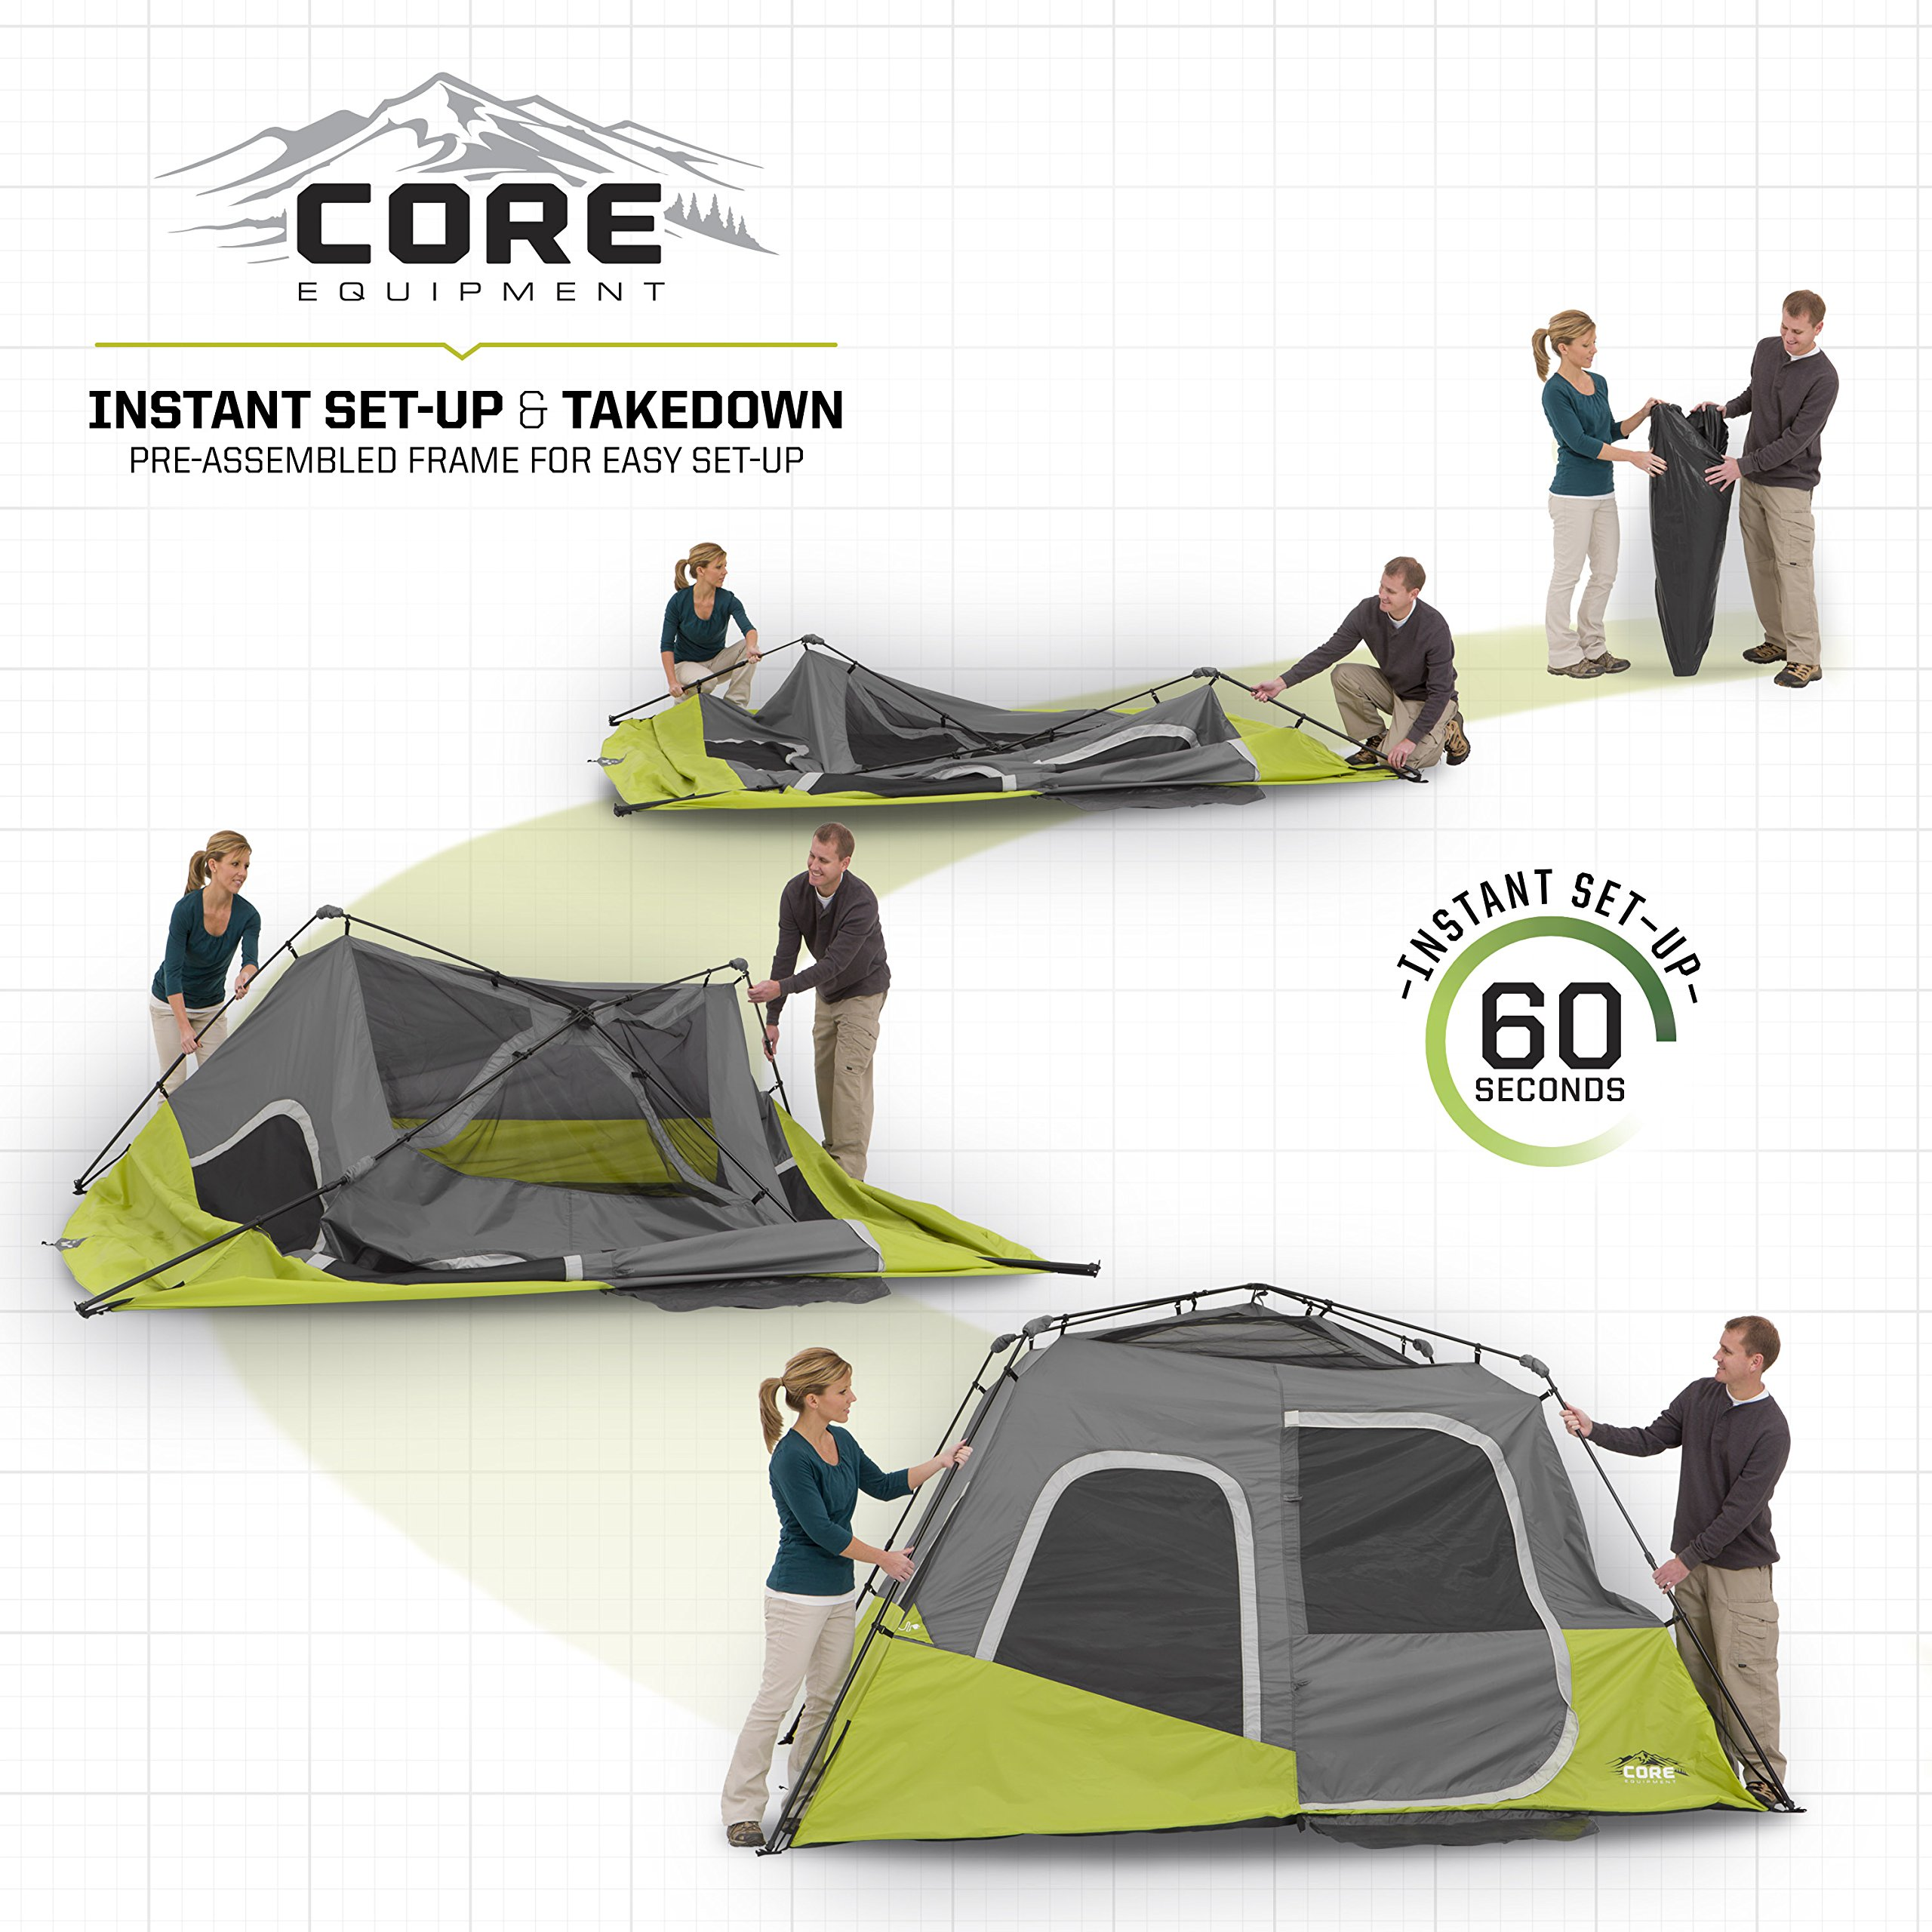 CORE Instant Cabin Tent, 6 Person, 11' x 9' by CORE (Image #3)